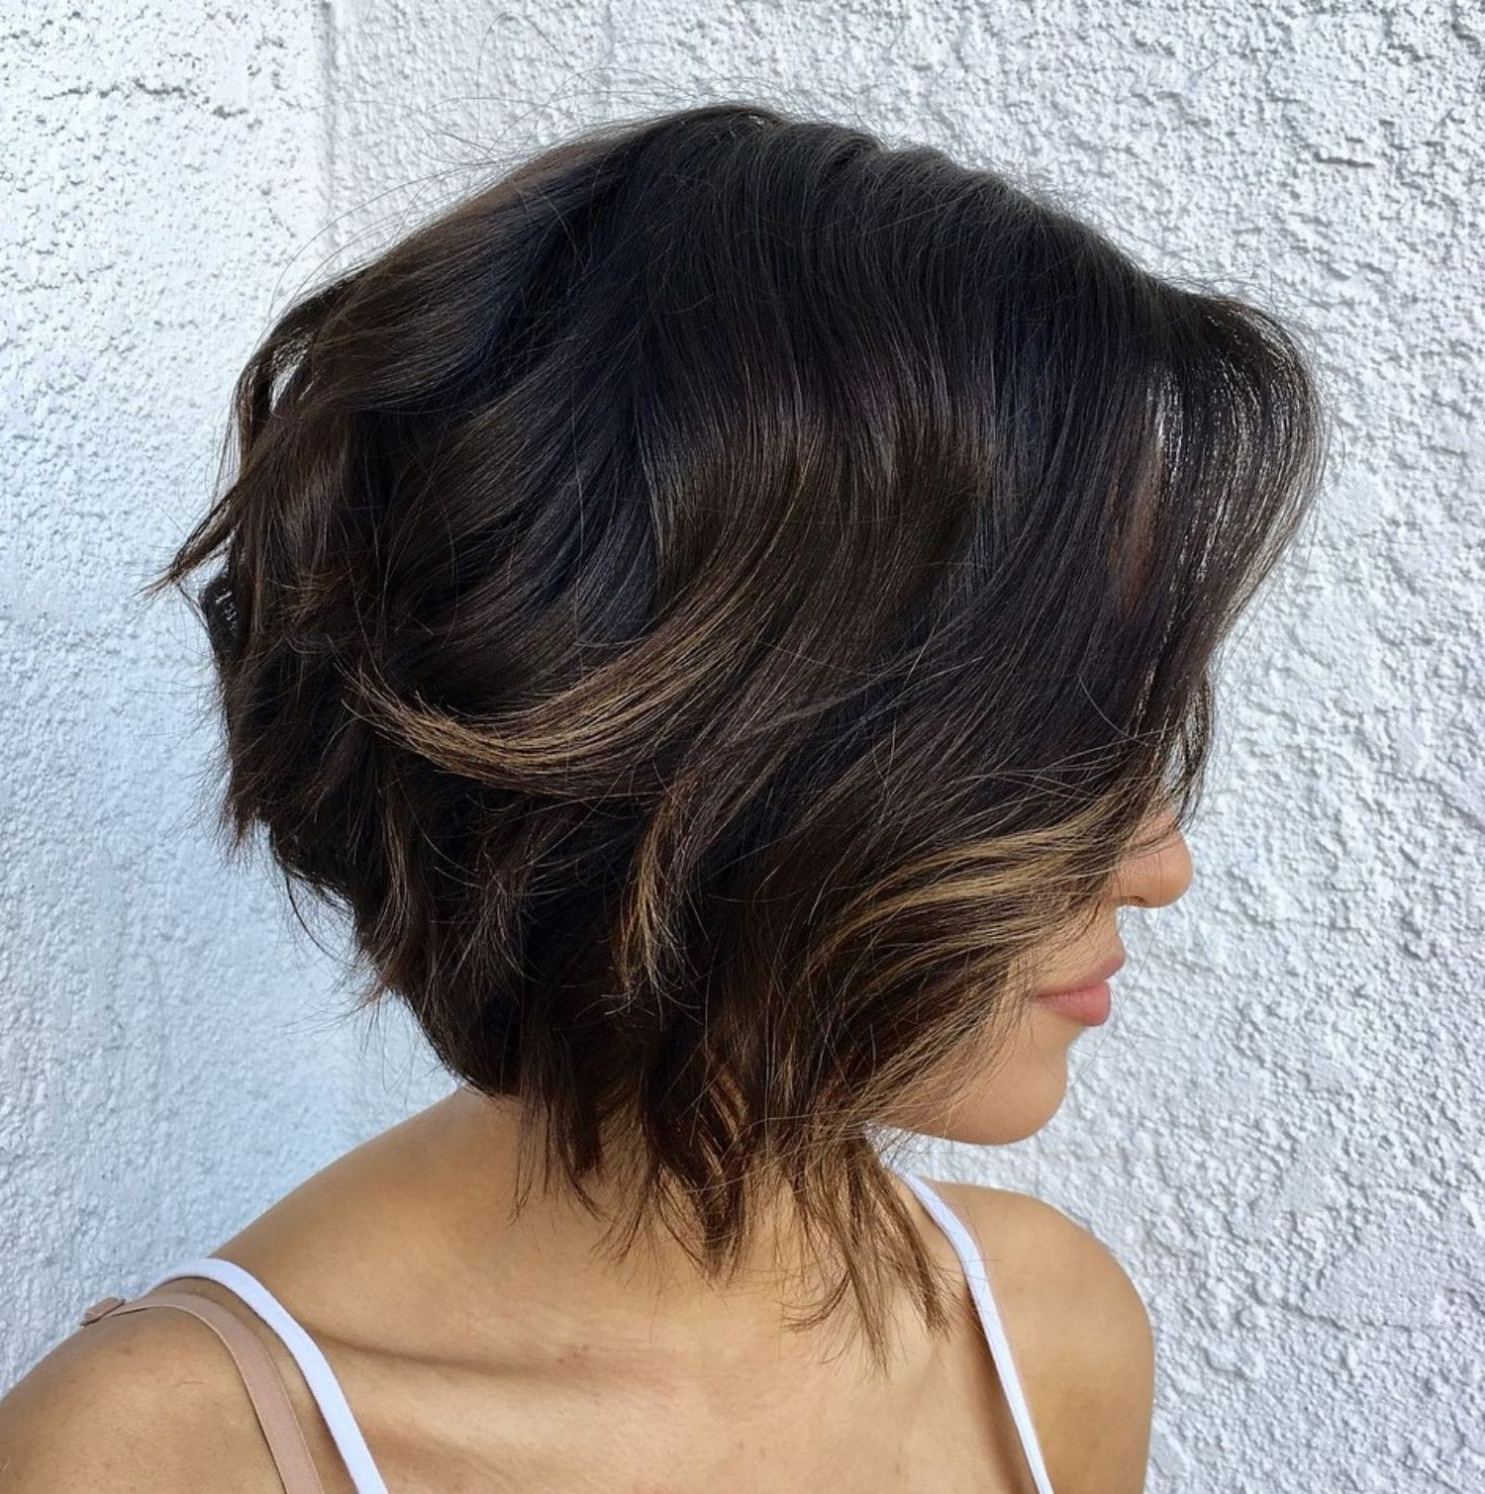 Fashionable Pretty Shaggy Brunette Bob Hairstyles Regarding 70 Fabulous Choppy Bob Hairstyles In 2019 (Gallery 2 of 20)